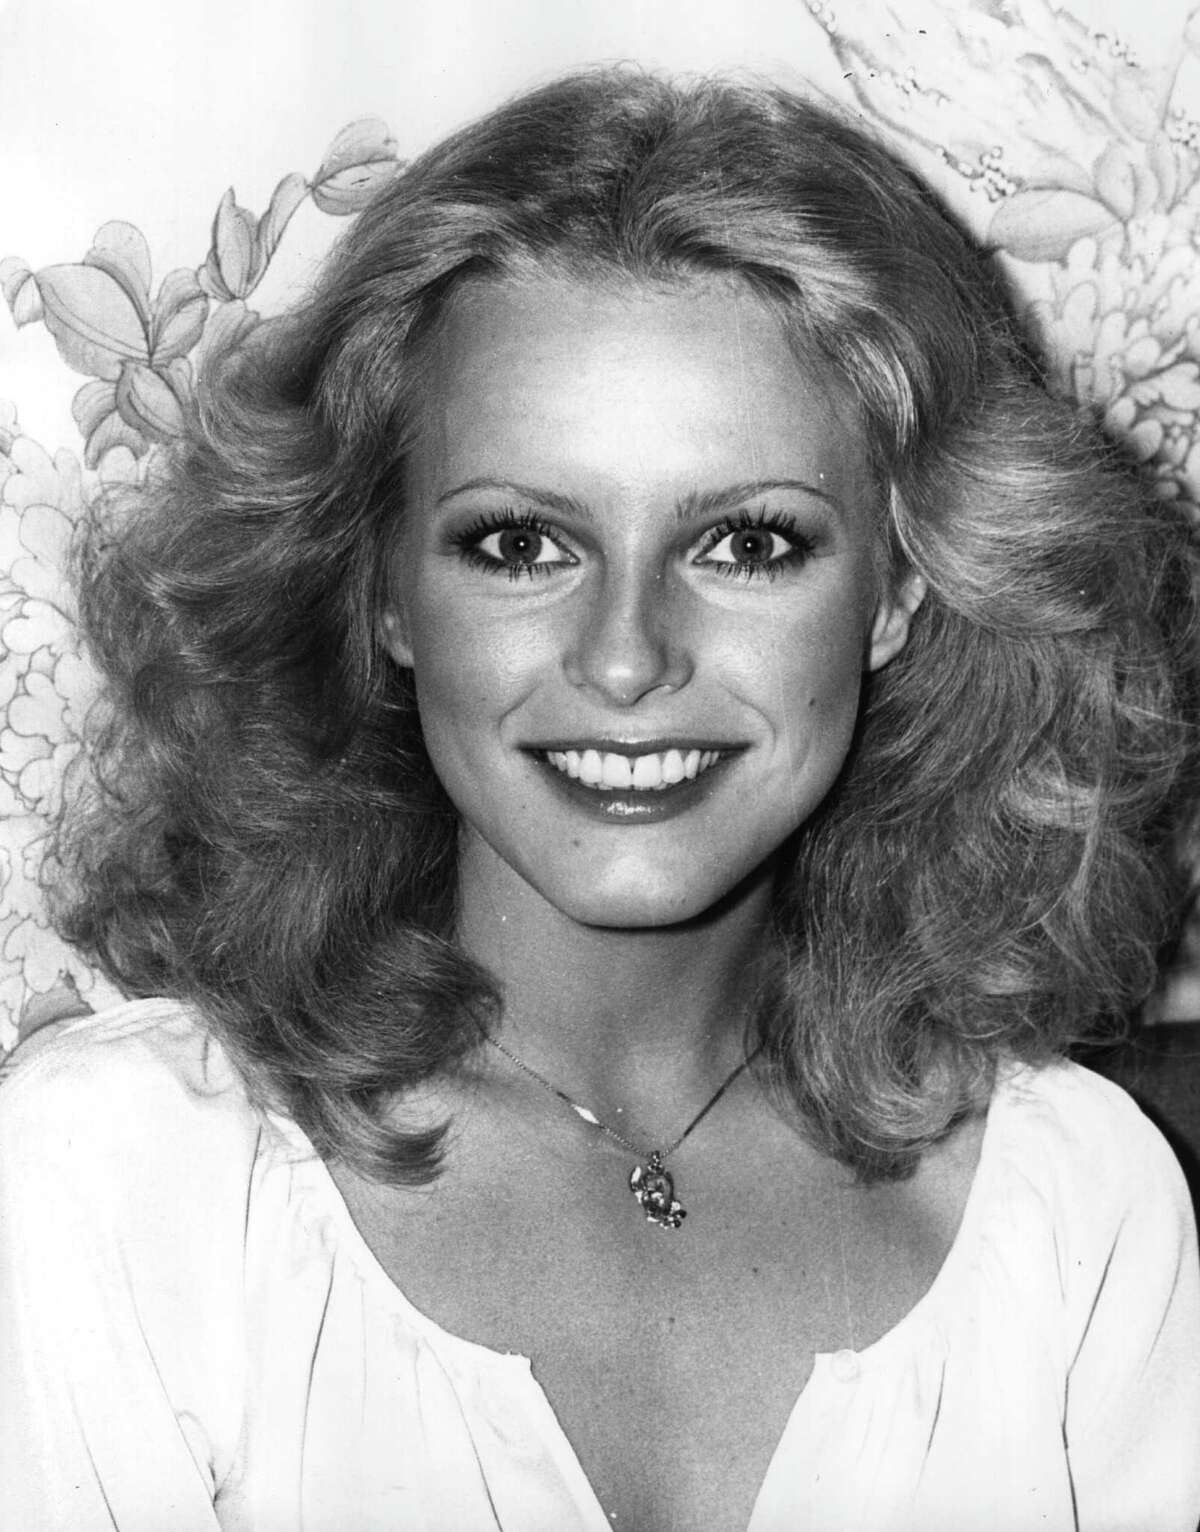 circa 1977: American television actress Cheryl Ladd, star of 'Charlies Angels'.